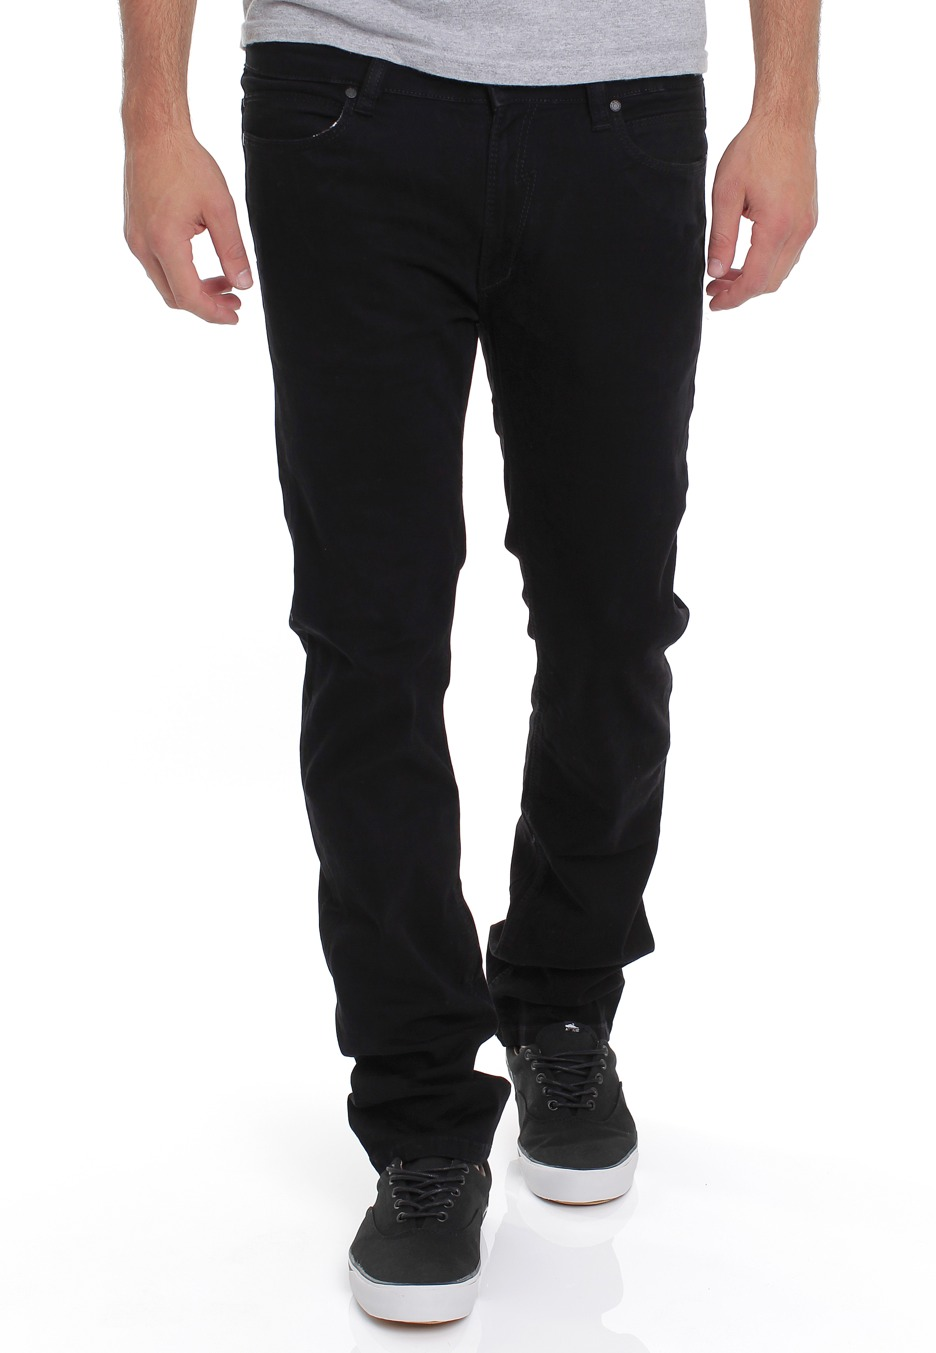 Find great deals on eBay for black stretch jeans. Shop with confidence.